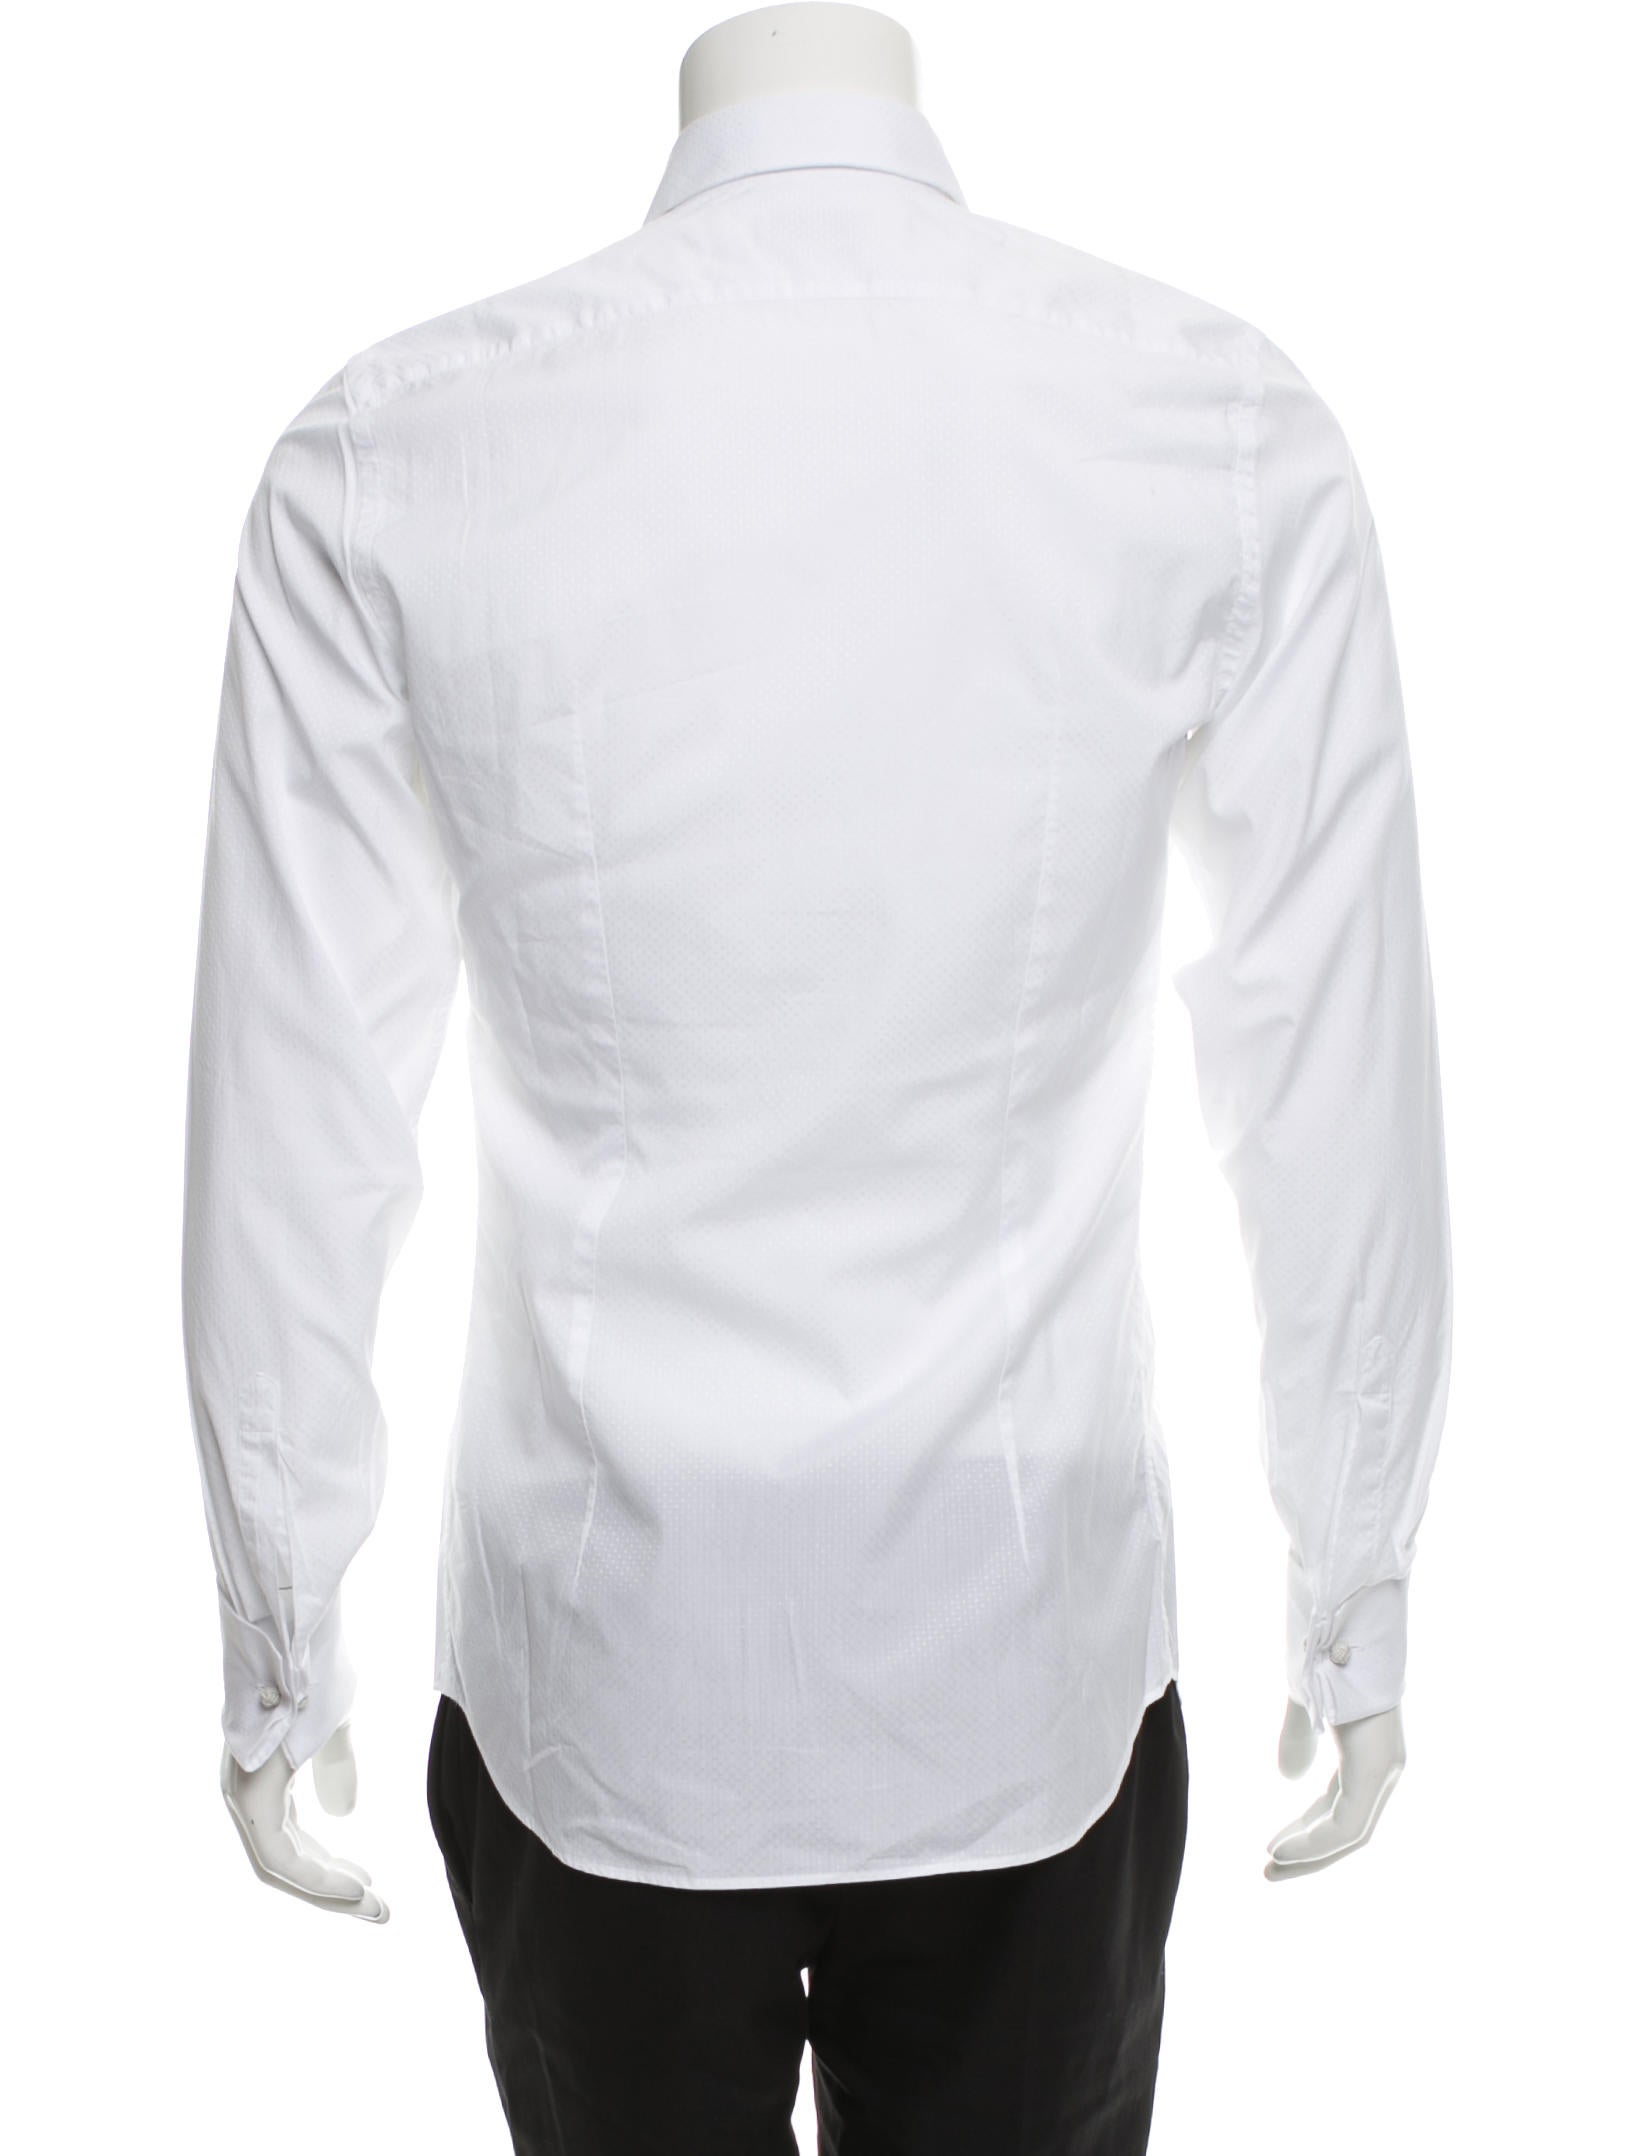 prada tuxedo french cuff shirt clothing pra153980